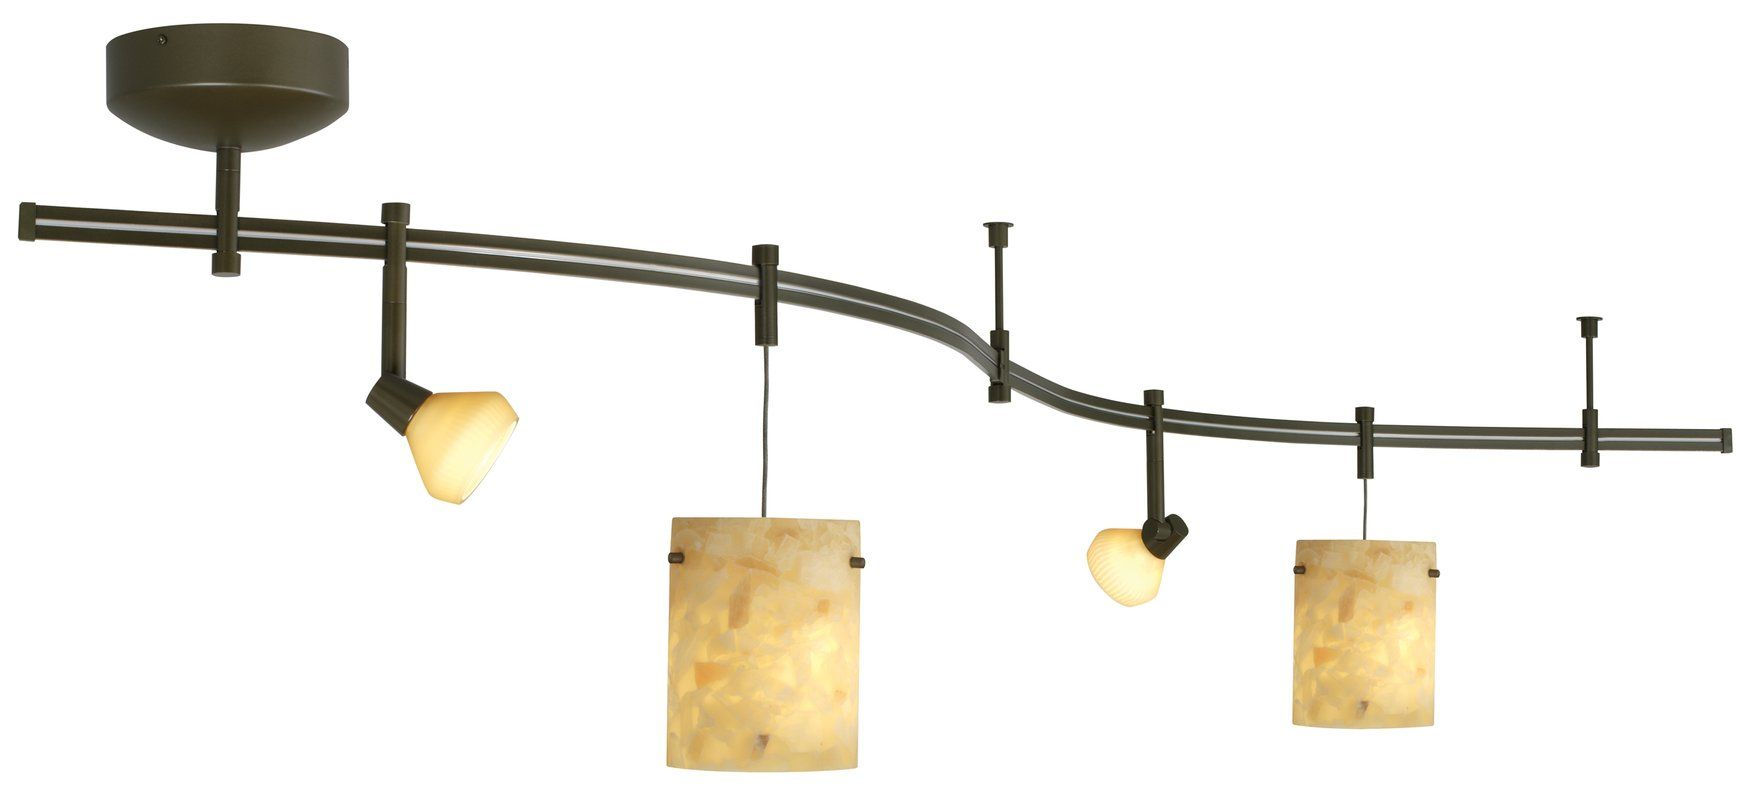 1000 images about lighting on pinterest energy star bronze and allen roth bronze flex track lighting